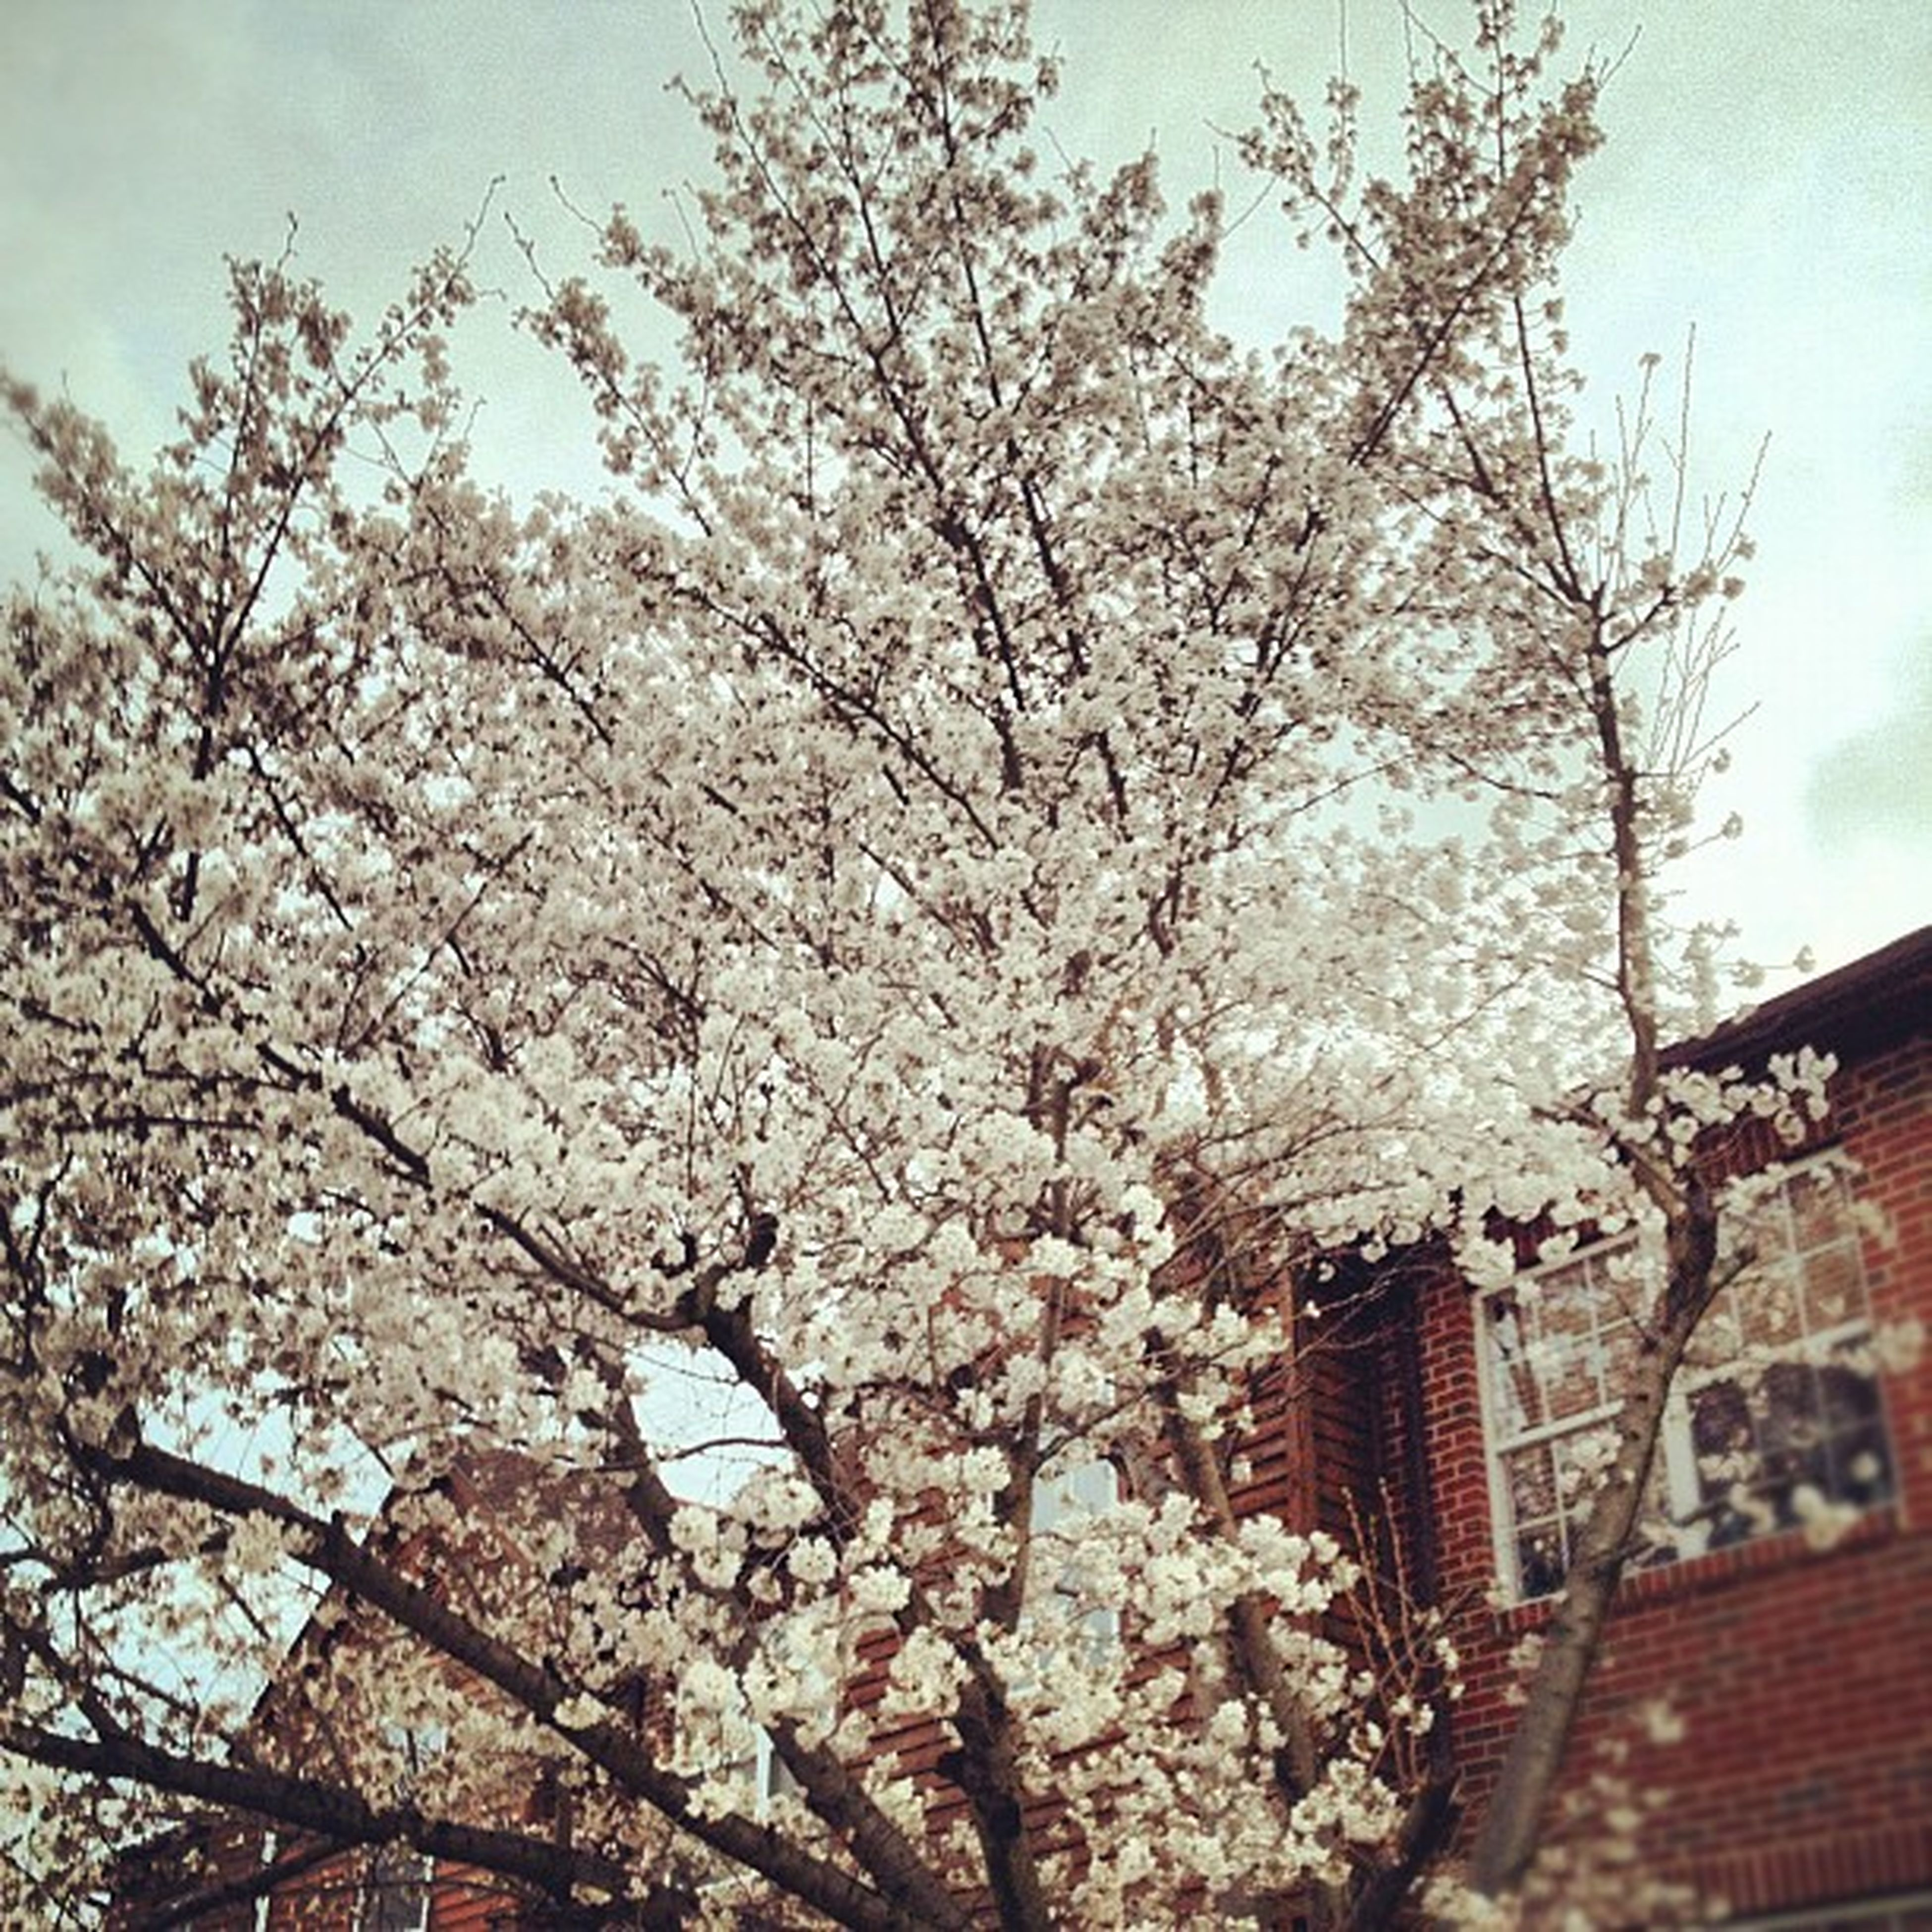 flower, low angle view, tree, branch, building exterior, built structure, architecture, growth, cherry blossom, blossom, freshness, cherry tree, fragility, white color, sky, nature, springtime, in bloom, blooming, beauty in nature